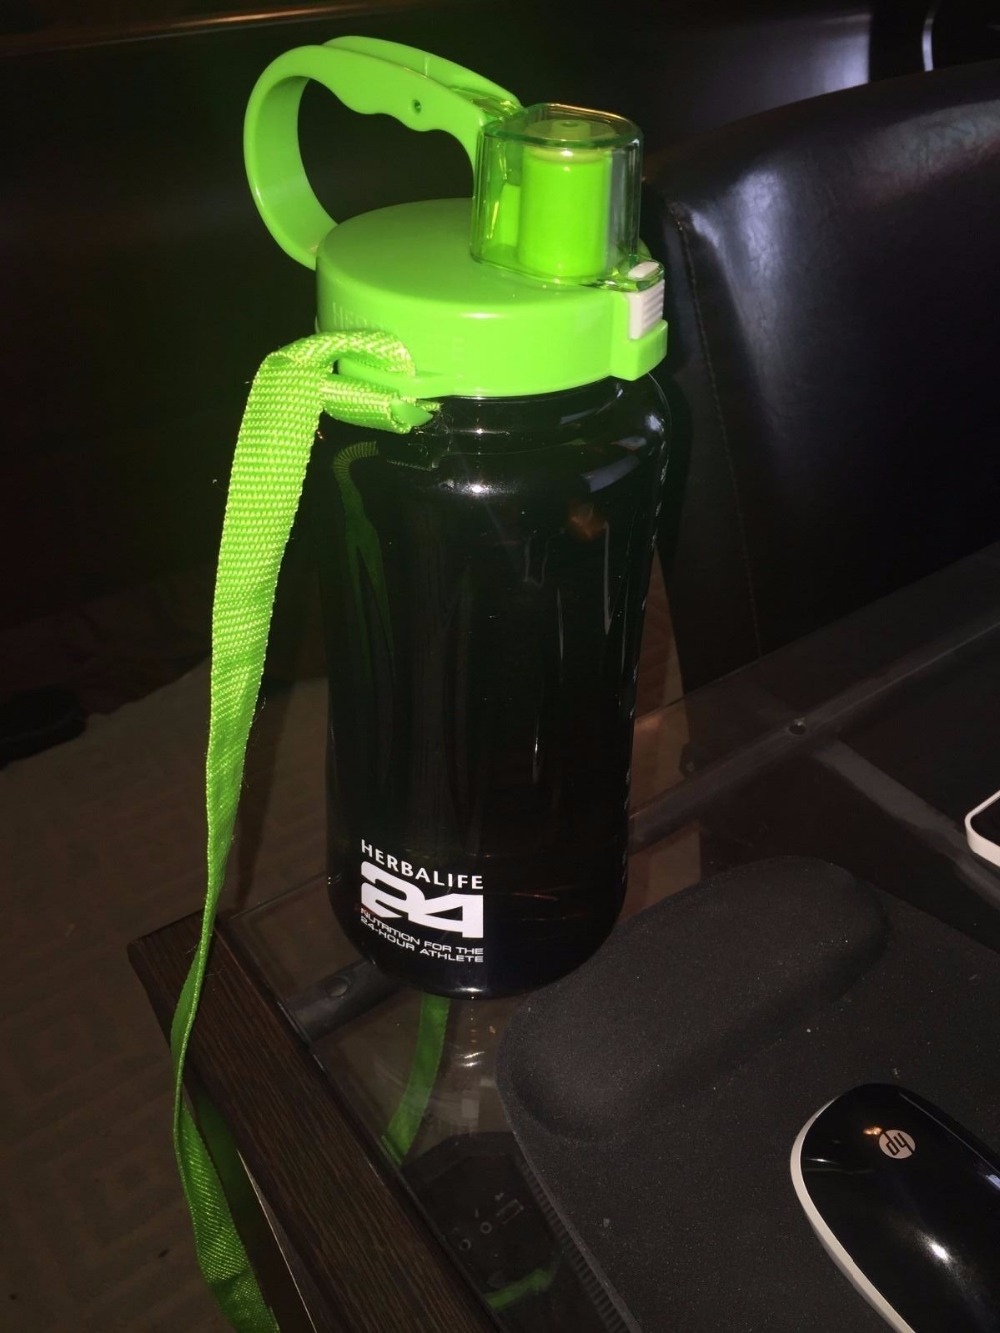 New Herbalife Nutrition 2pcs Shake Water Bottle 2L Black Green With Straw Inside Tritan Plastic Material